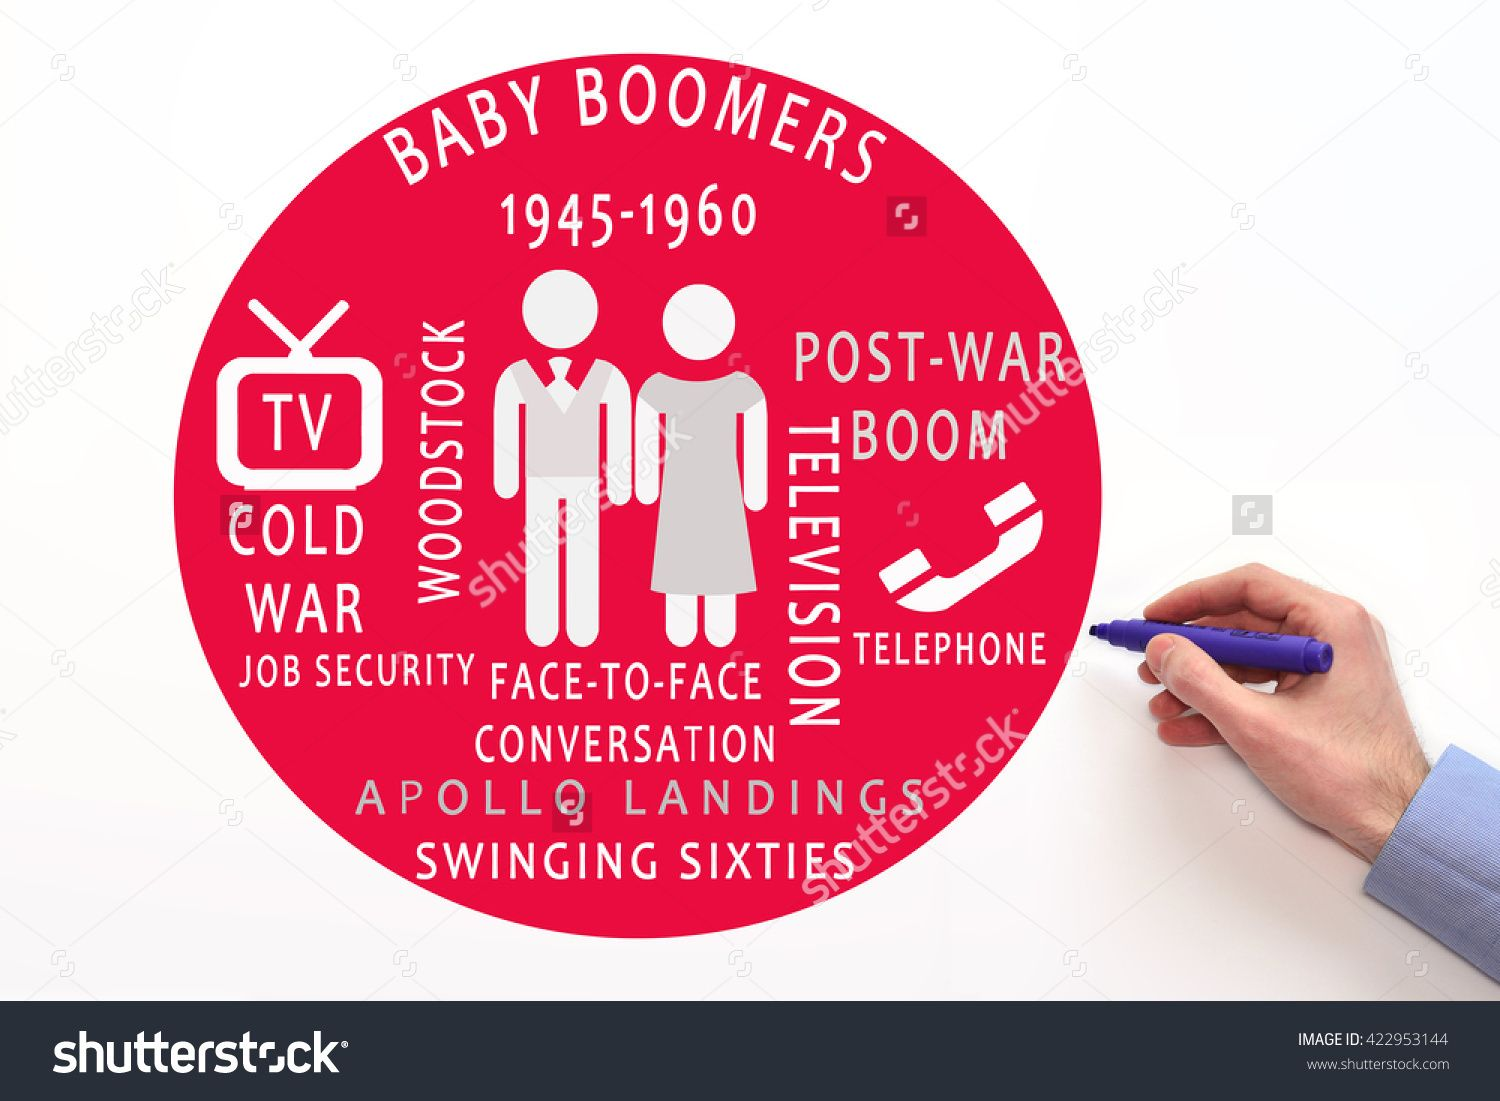 marketing to baby boomers Sure, good customer service, user-friendly websites, targeted marketing, and sleek design are appreciated beyond the baby boomer generation, but making sure these elements come together in a way that doesn't make the consumer feel old is crucial to marketing their products.